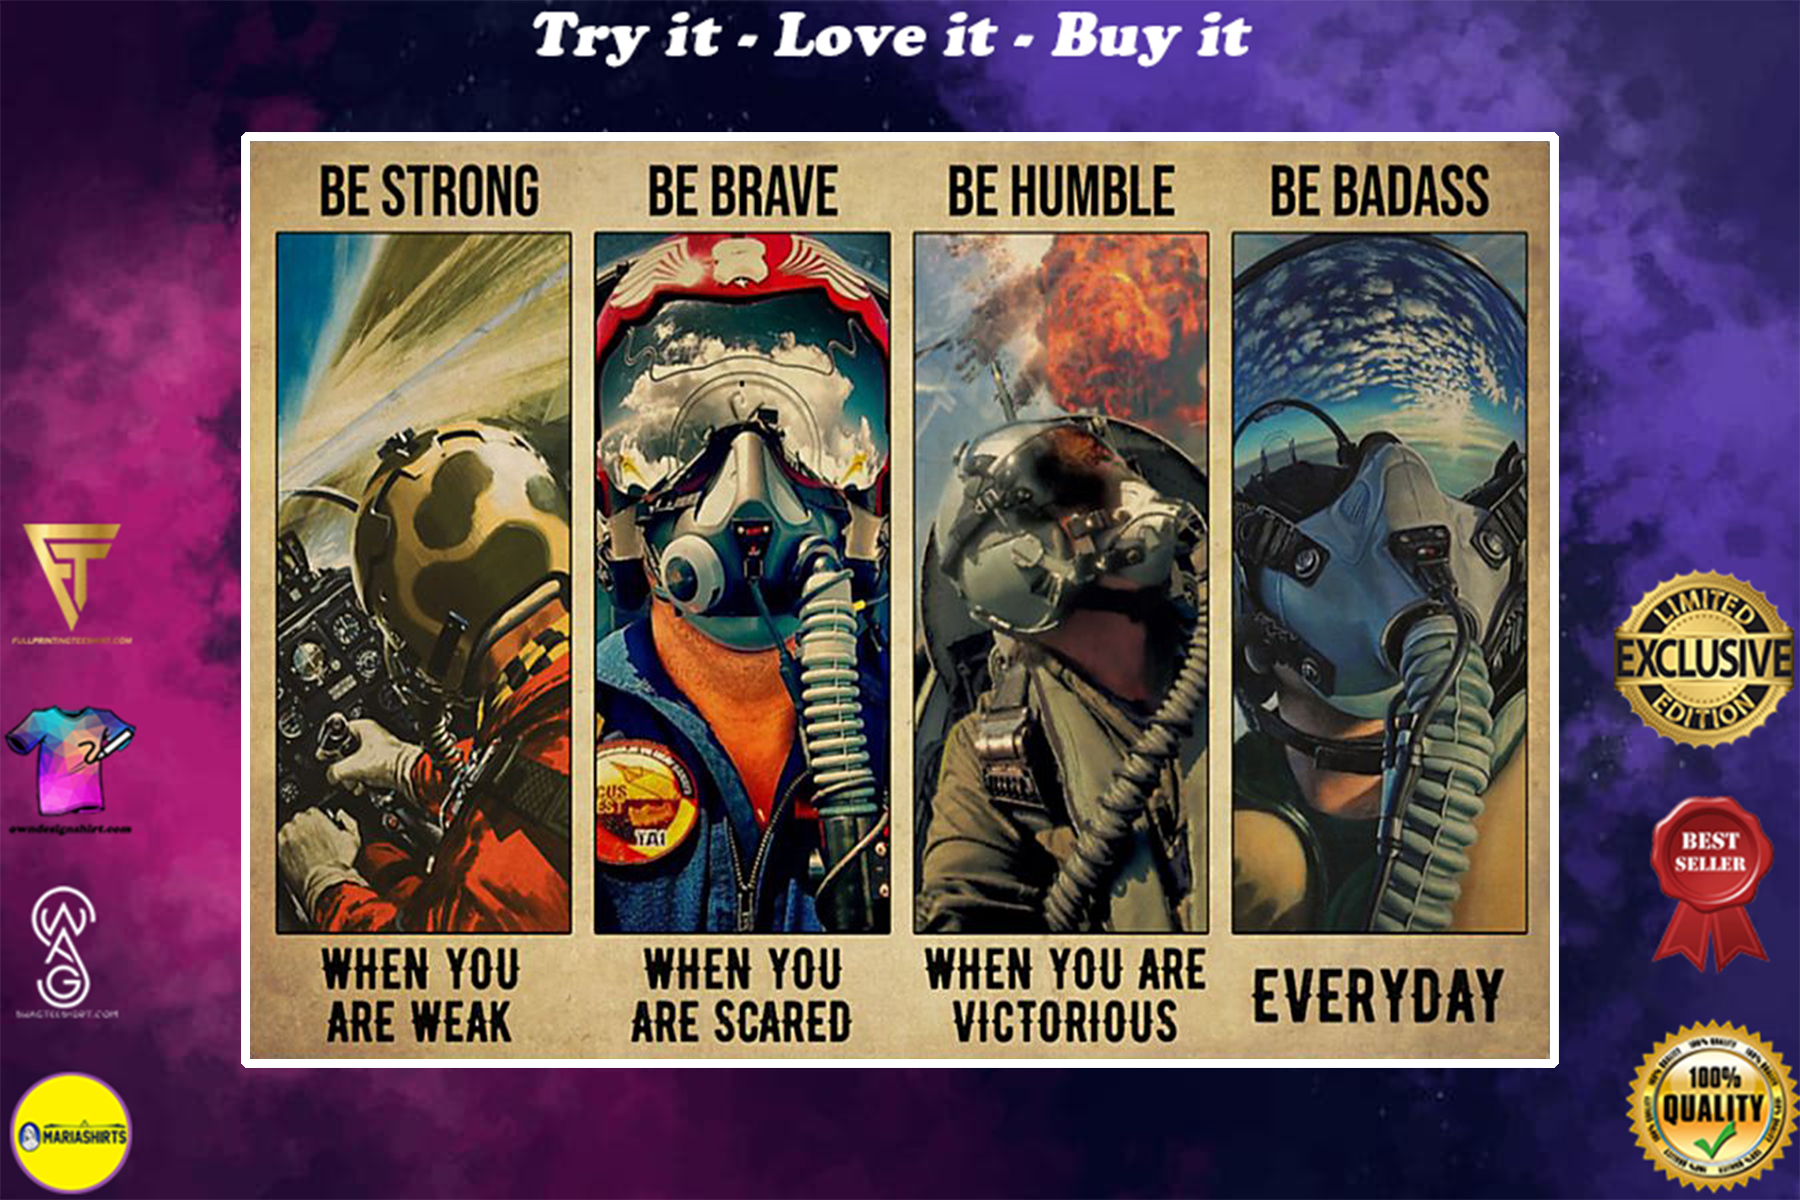 vintage fighter jet pilot be strong when you are weak be brave when you are scared poster